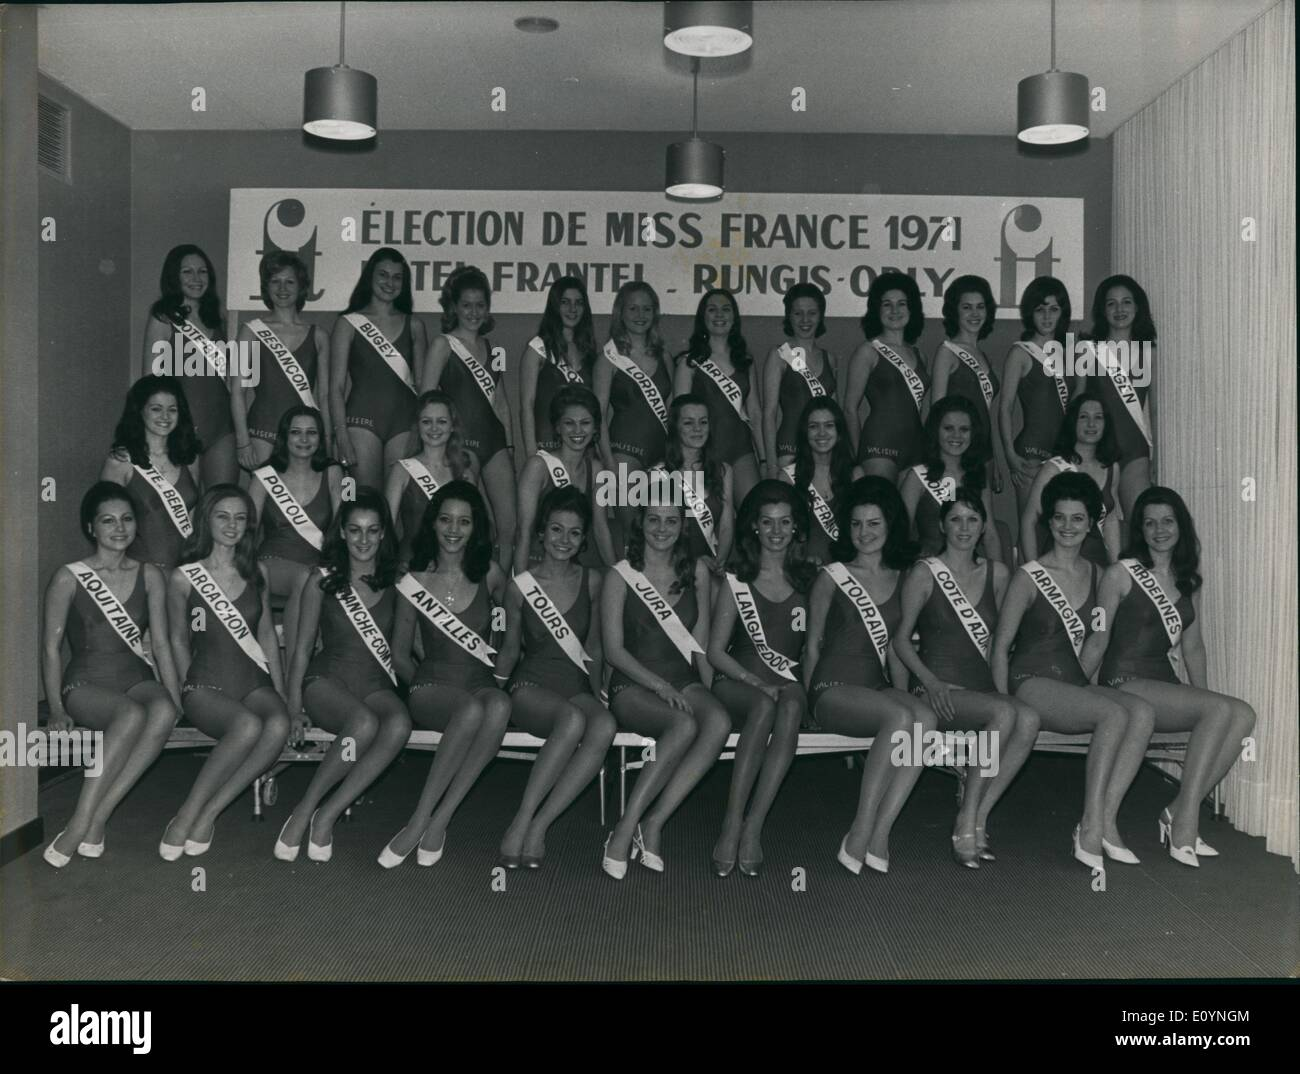 Dec. 12, 1970 - The 31 prettiest girls from our provinces will participate in the Miss France beauty pageant on Stock Photo